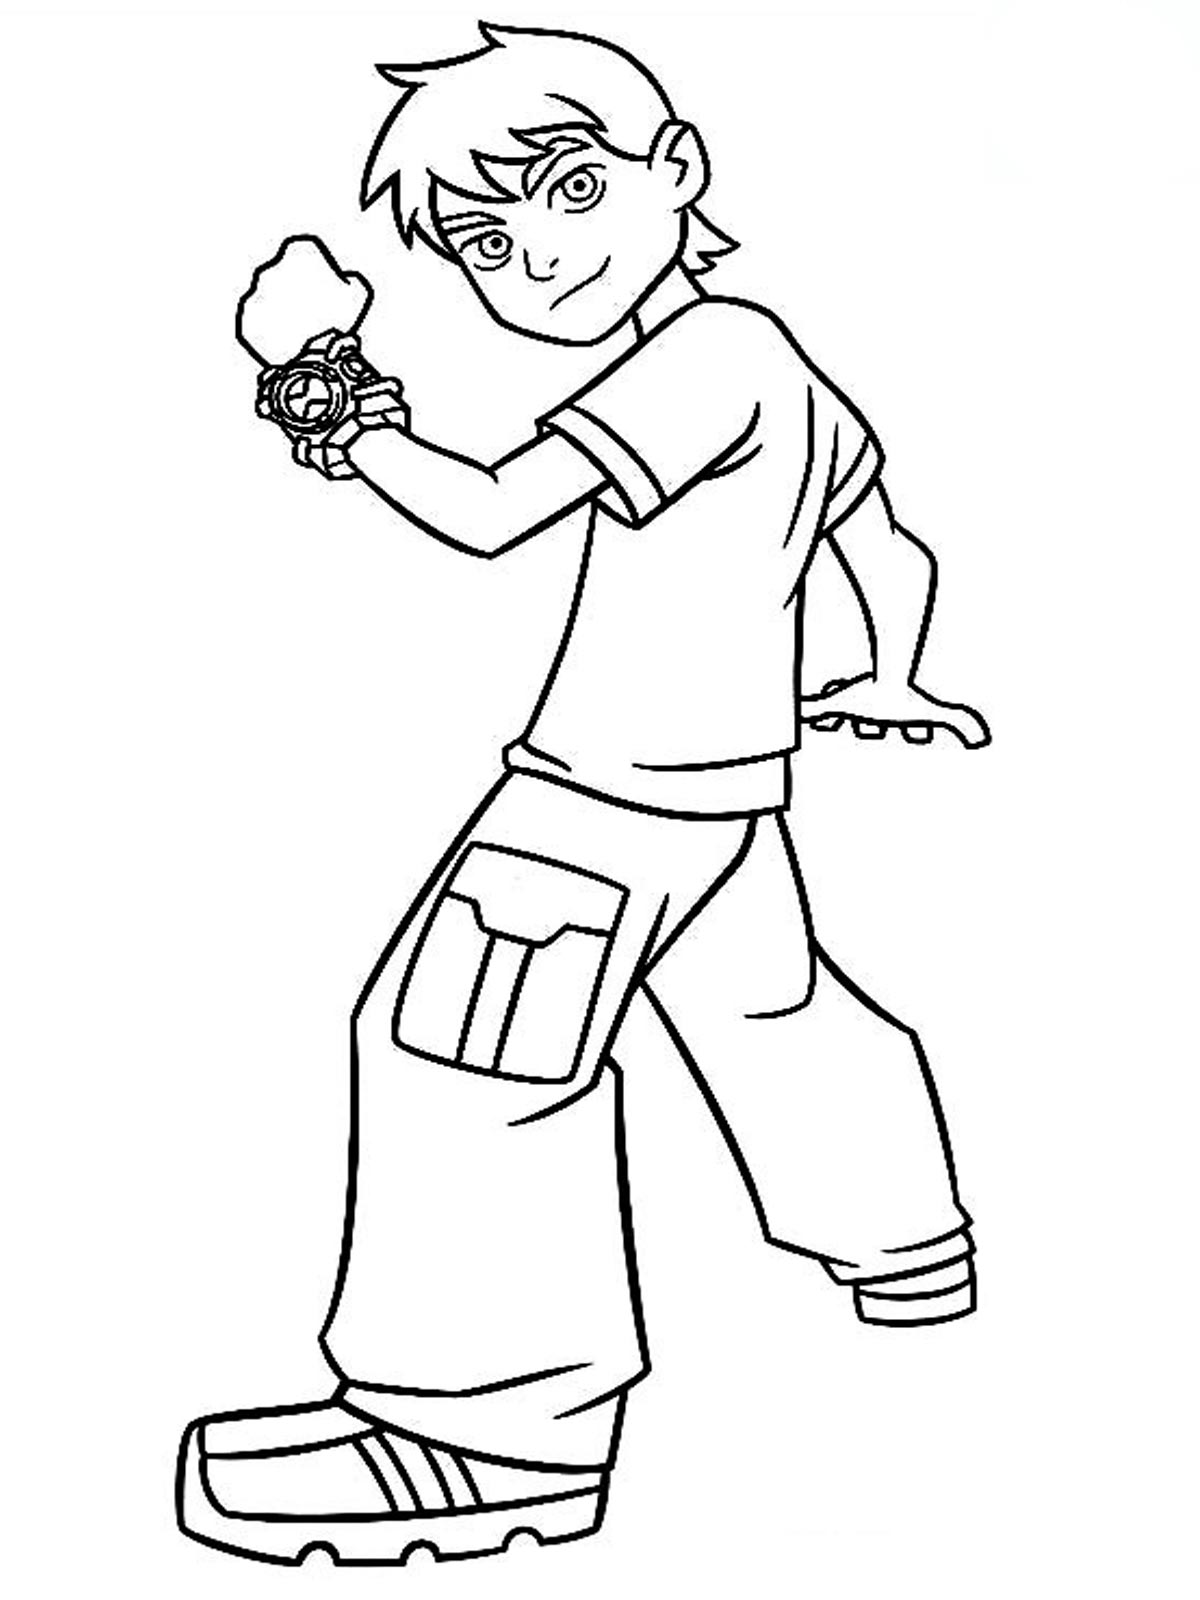 Online childrens coloring pages - Drawing Pages Online Online Coloring Ben 10 Very Best Ben 10 Coloring Pages